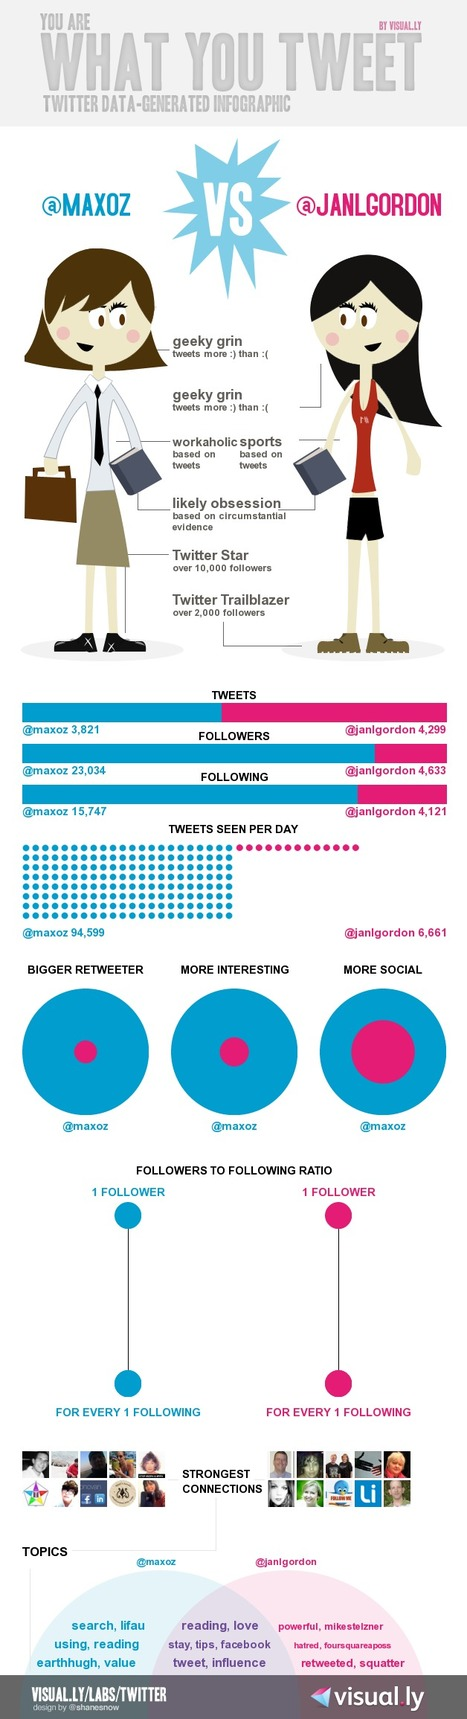 How To Make An Infographic Of Your Twitter Profile | Social media and education | Scoop.it